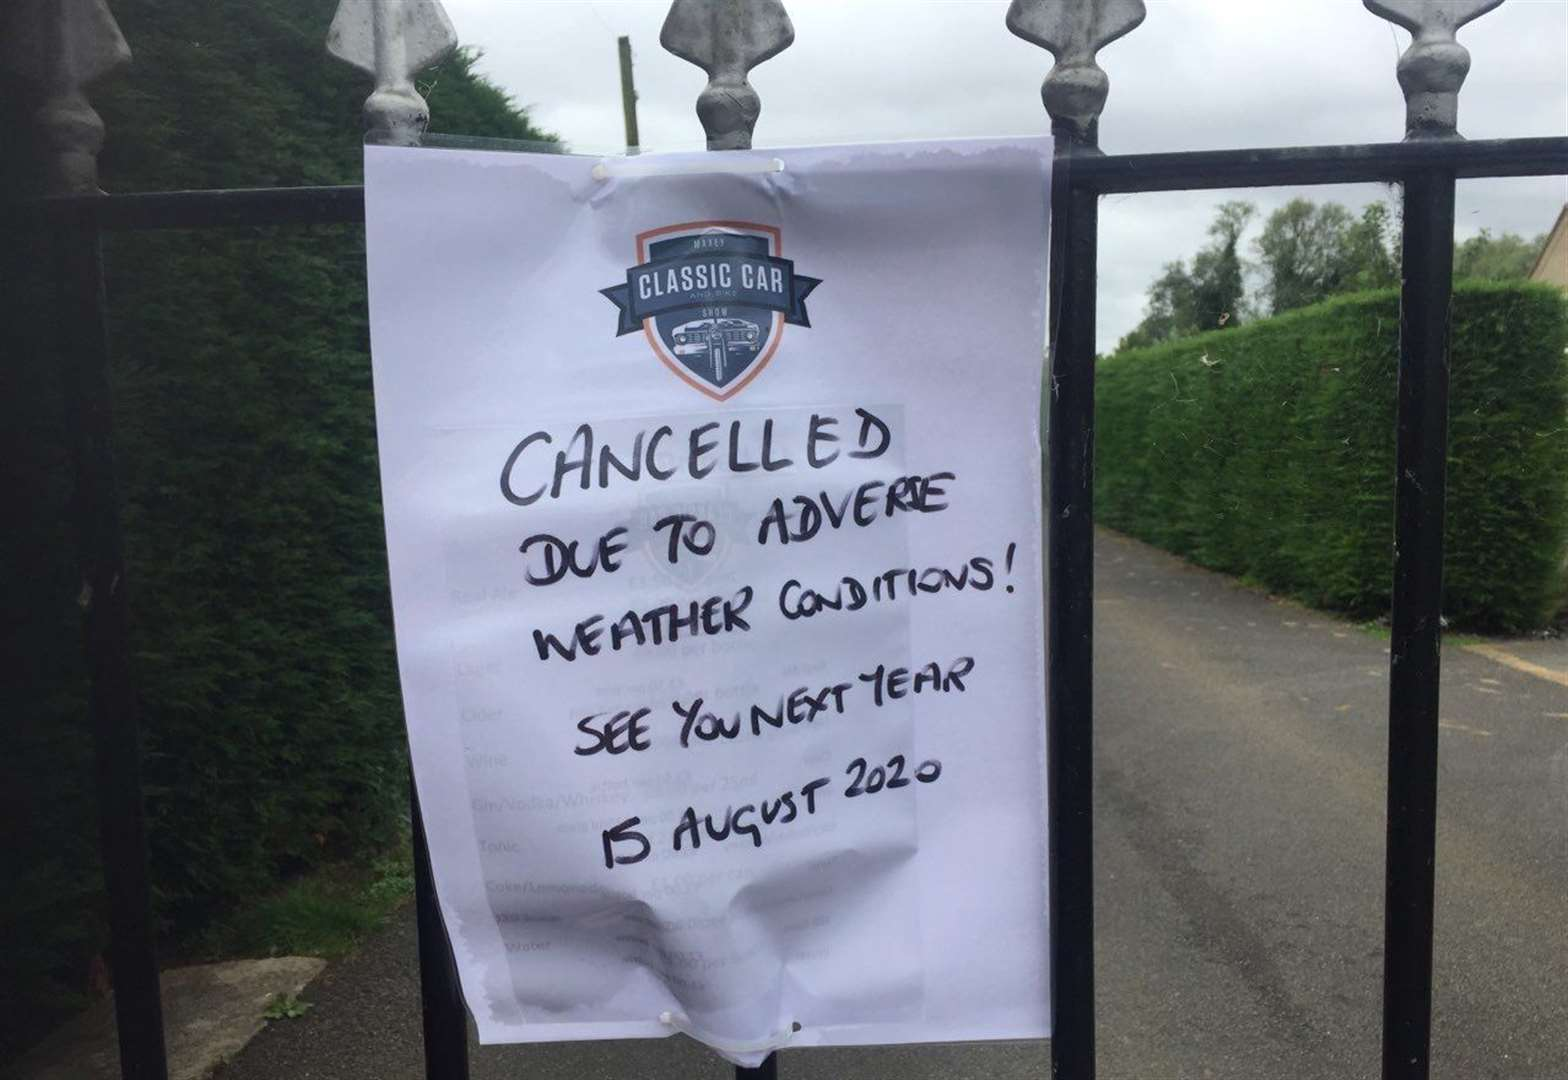 Popular event cancelled by 50mph winds